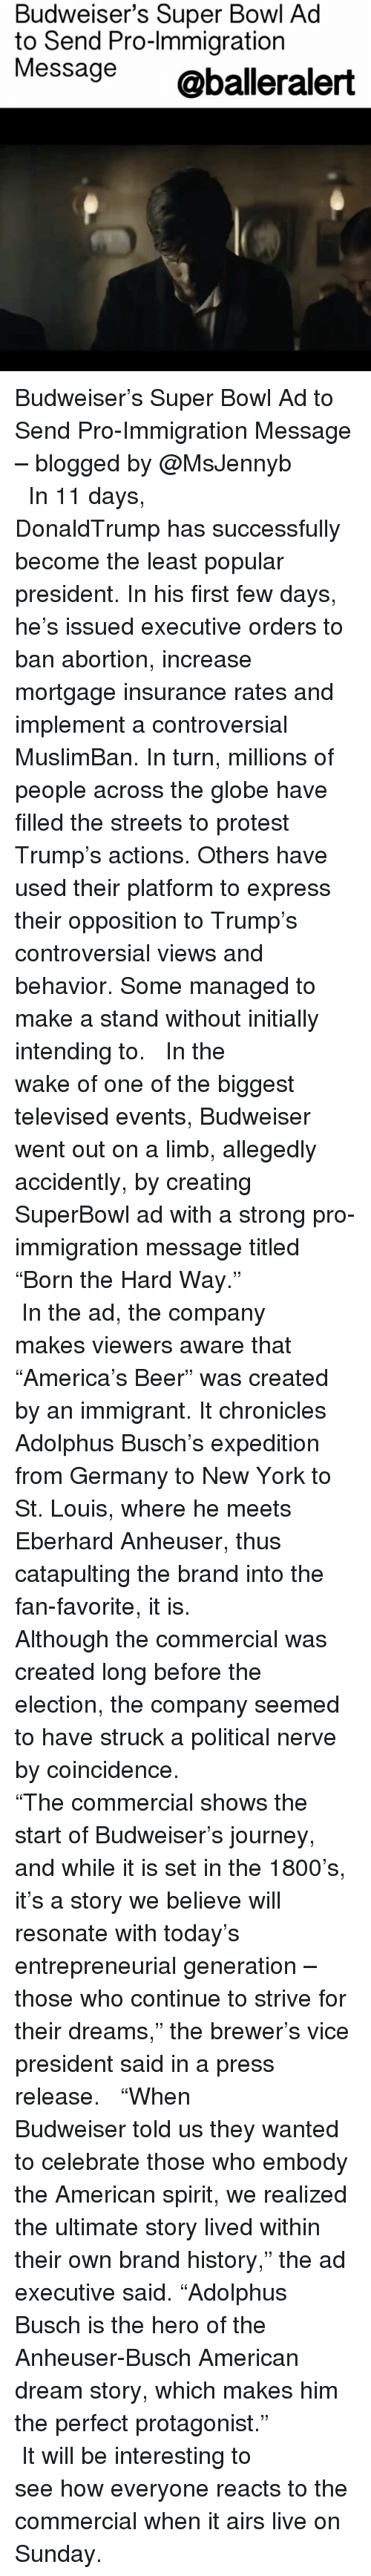 """Initialisms: Budweiser's Super Bowl Ad  to Send Pro-lmmigration  Message  @balleralert Budweiser's Super Bowl Ad to Send Pro-Immigration Message – blogged by @MsJennyb ⠀⠀⠀⠀⠀⠀⠀⠀⠀ ⠀⠀⠀⠀⠀⠀⠀⠀⠀ In 11 days, DonaldTrump has successfully become the least popular president. In his first few days, he's issued executive orders to ban abortion, increase mortgage insurance rates and implement a controversial MuslimBan. In turn, millions of people across the globe have filled the streets to protest Trump's actions. Others have used their platform to express their opposition to Trump's controversial views and behavior. Some managed to make a stand without initially intending to. ⠀⠀⠀⠀⠀⠀⠀⠀⠀ ⠀⠀⠀⠀⠀⠀⠀⠀⠀ In the wake of one of the biggest televised events, Budweiser went out on a limb, allegedly accidently, by creating SuperBowl ad with a strong pro-immigration message titled """"Born the Hard Way."""" ⠀⠀⠀⠀⠀⠀⠀⠀⠀ ⠀⠀⠀⠀⠀⠀⠀⠀⠀ In the ad, the company makes viewers aware that """"America's Beer"""" was created by an immigrant. It chronicles Adolphus Busch's expedition from Germany to New York to St. Louis, where he meets Eberhard Anheuser, thus catapulting the brand into the fan-favorite, it is. ⠀⠀⠀⠀⠀⠀⠀⠀⠀ ⠀⠀⠀⠀⠀⠀⠀⠀⠀ Although the commercial was created long before the election, the company seemed to have struck a political nerve by coincidence. ⠀⠀⠀⠀⠀⠀⠀⠀⠀ ⠀⠀⠀⠀⠀⠀⠀⠀⠀ """"The commercial shows the start of Budweiser's journey, and while it is set in the 1800's, it's a story we believe will resonate with today's entrepreneurial generation – those who continue to strive for their dreams,"""" the brewer's vice president said in a press release. ⠀⠀⠀⠀⠀⠀⠀⠀⠀ ⠀⠀⠀⠀⠀⠀⠀⠀⠀ """"When Budweiser told us they wanted to celebrate those who embody the American spirit, we realized the ultimate story lived within their own brand history,"""" the ad executive said. """"Adolphus Busch is the hero of the Anheuser-Busch American dream story, which makes him the perfect protagonist."""" ⠀⠀⠀⠀⠀⠀⠀⠀⠀ ⠀⠀⠀⠀⠀⠀⠀⠀⠀ It will be interesting to see how everyone reacts t"""